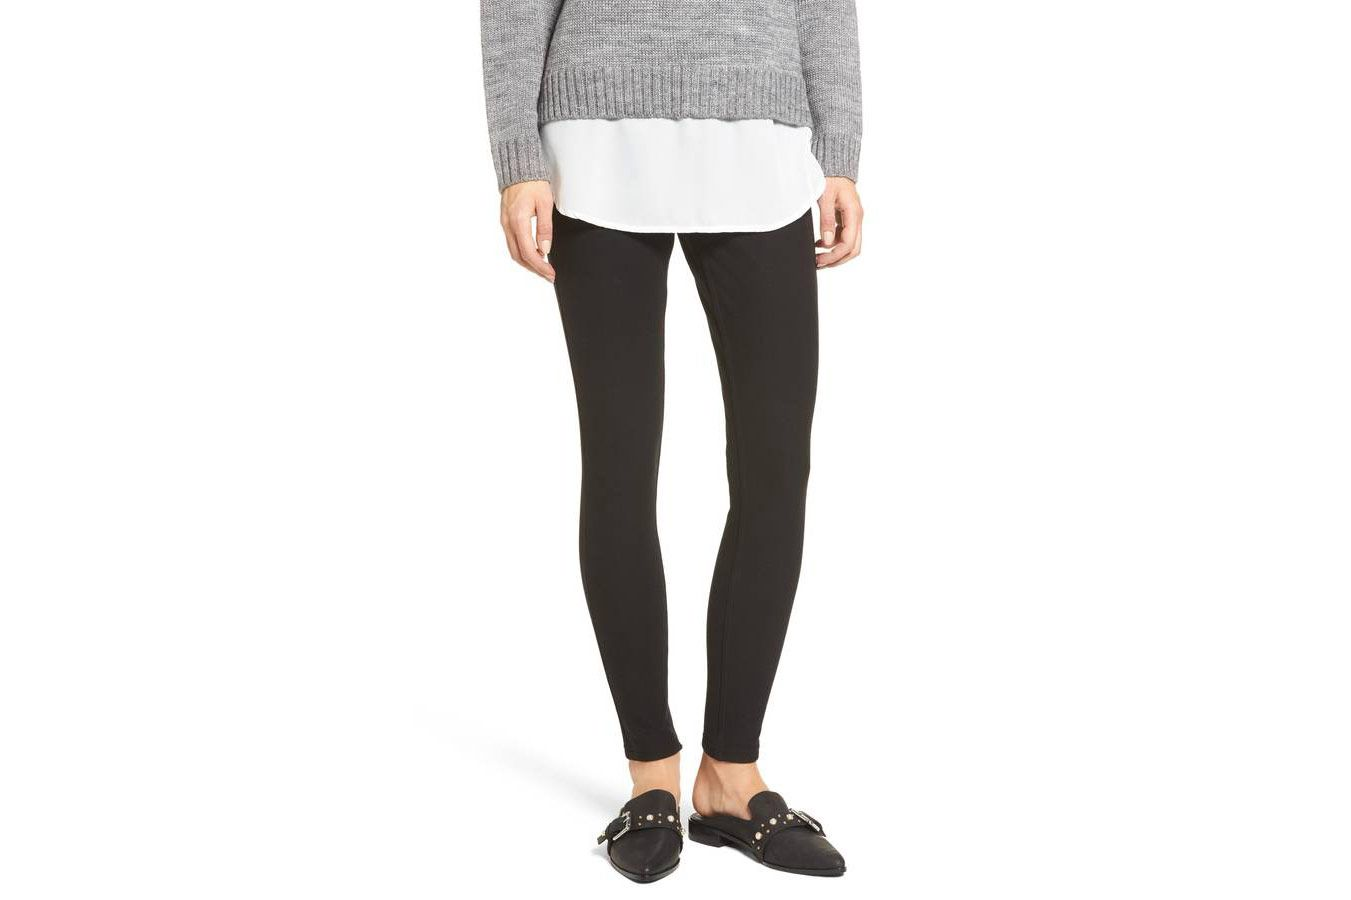 Hue Fleece Lined Jeggings